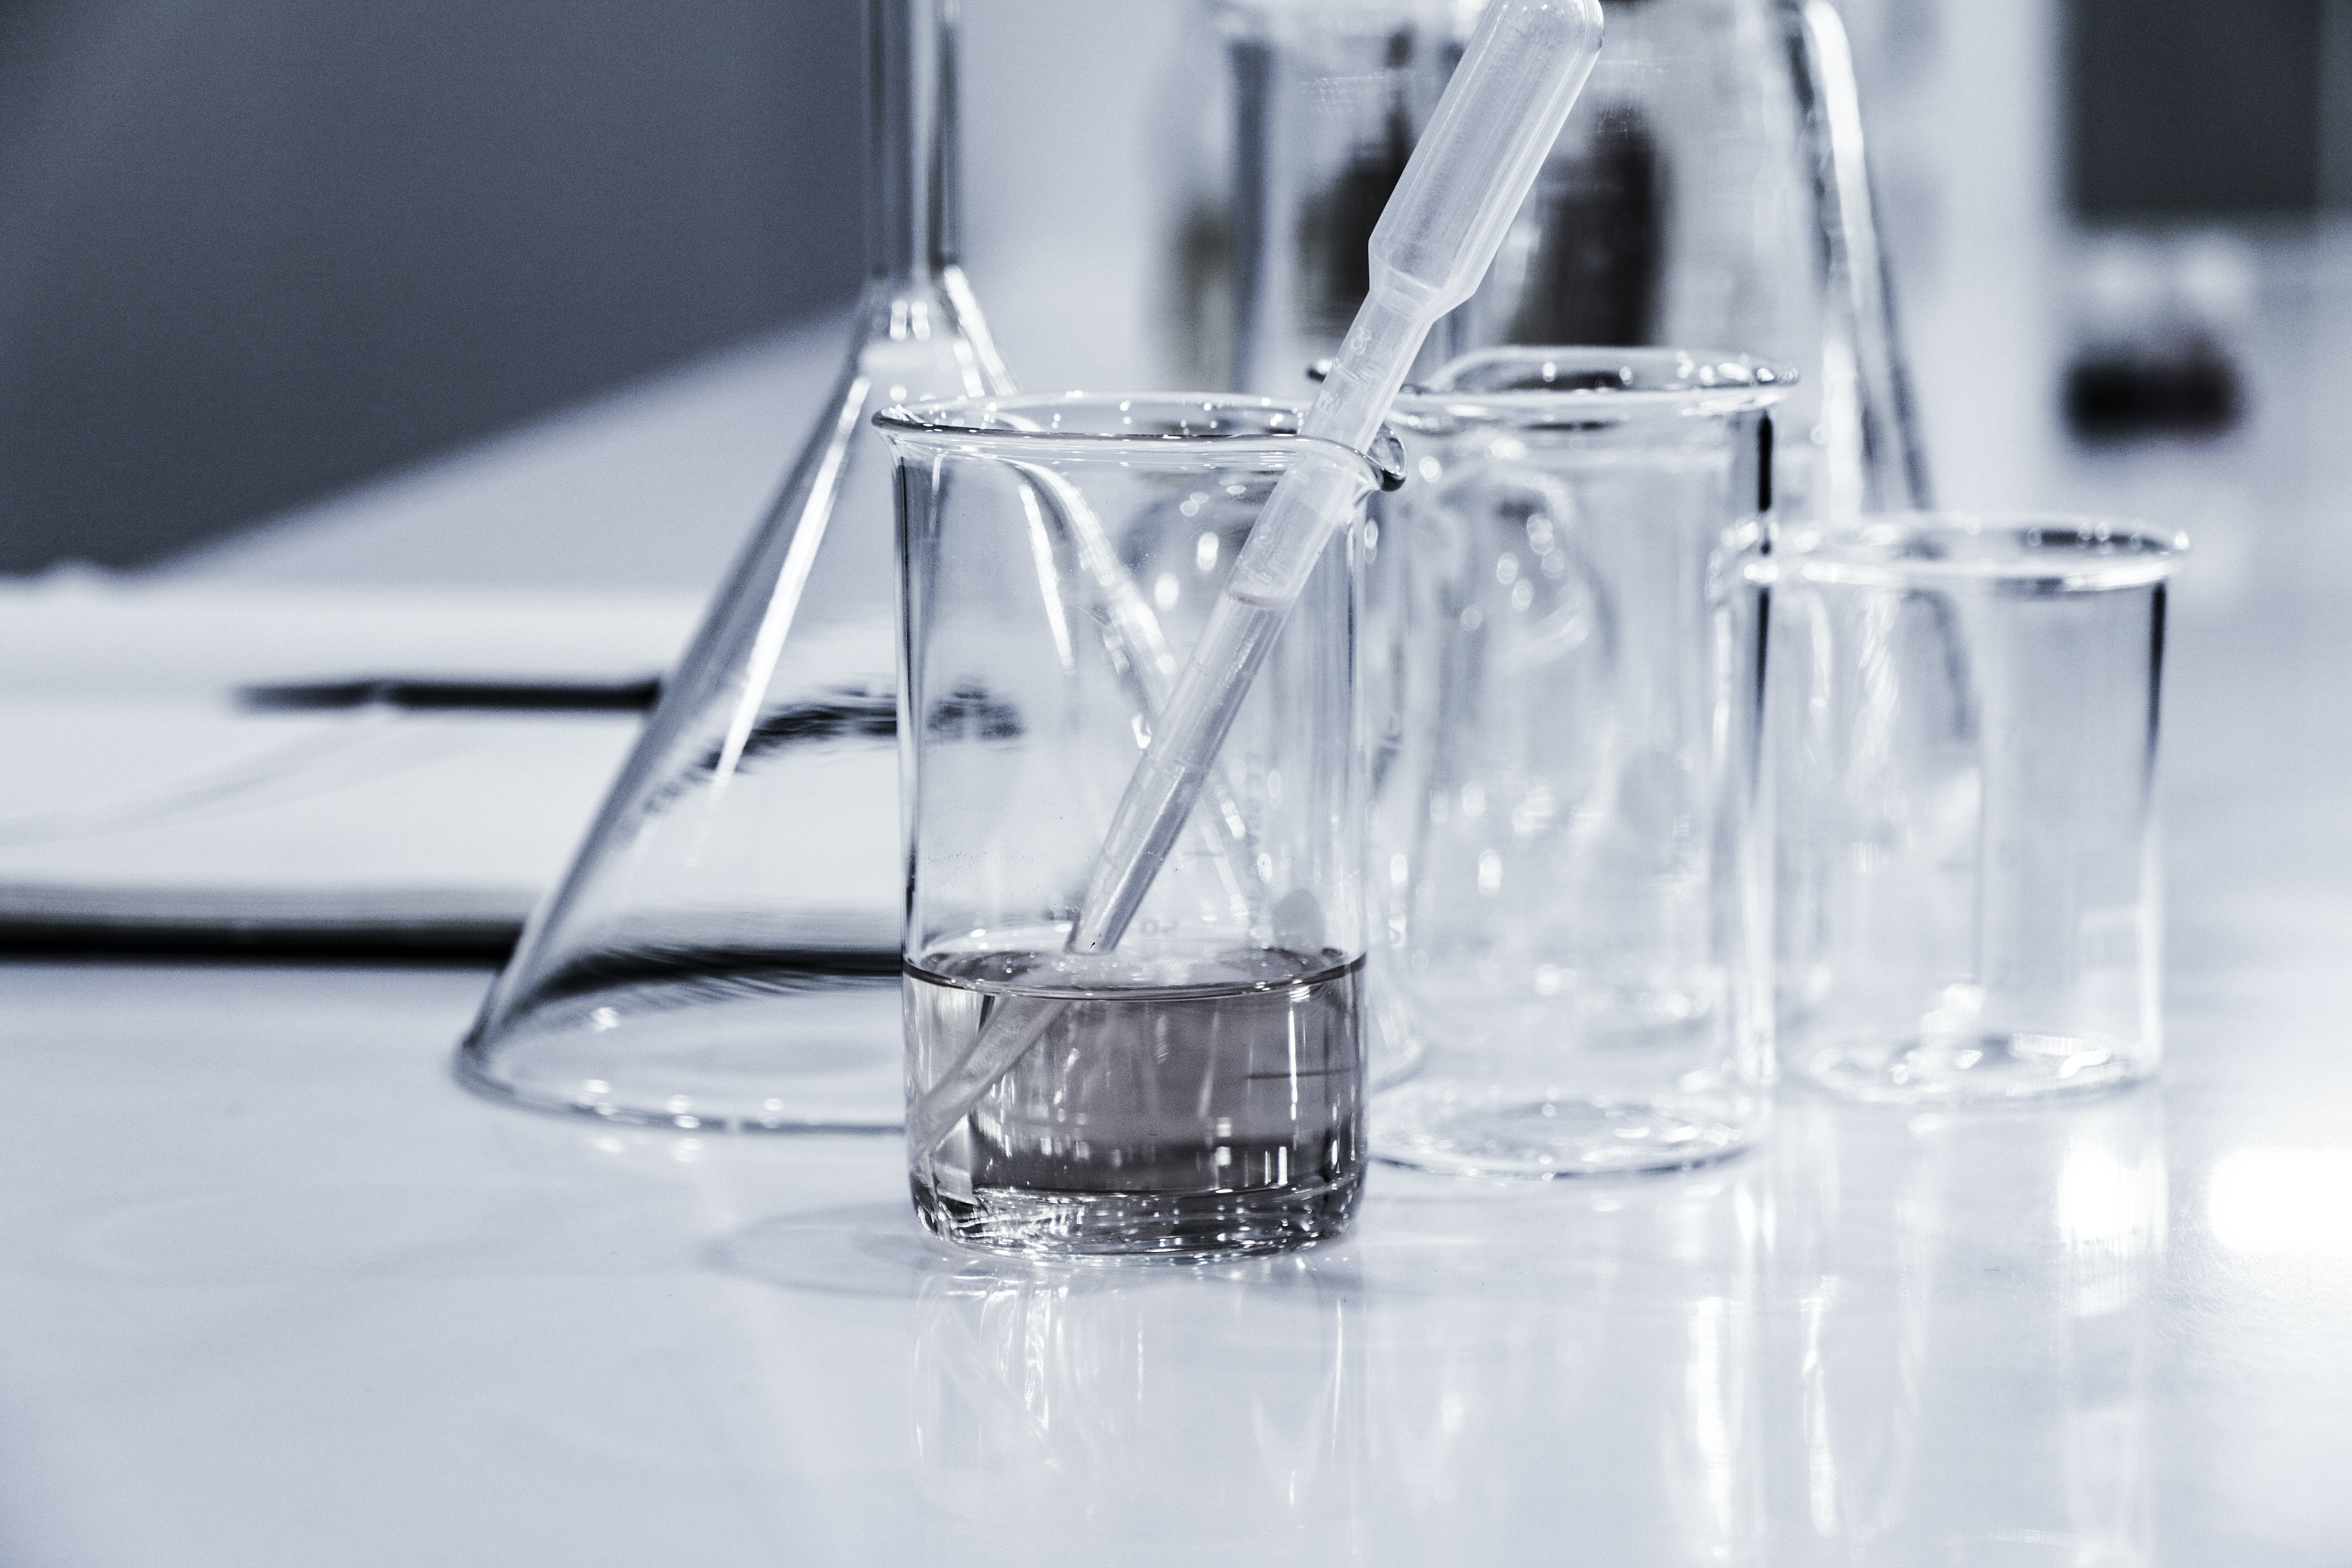 Photograph of a plastic pipette in a glass beaker filled with water, with empty glass beakers and a glass funnel in the background